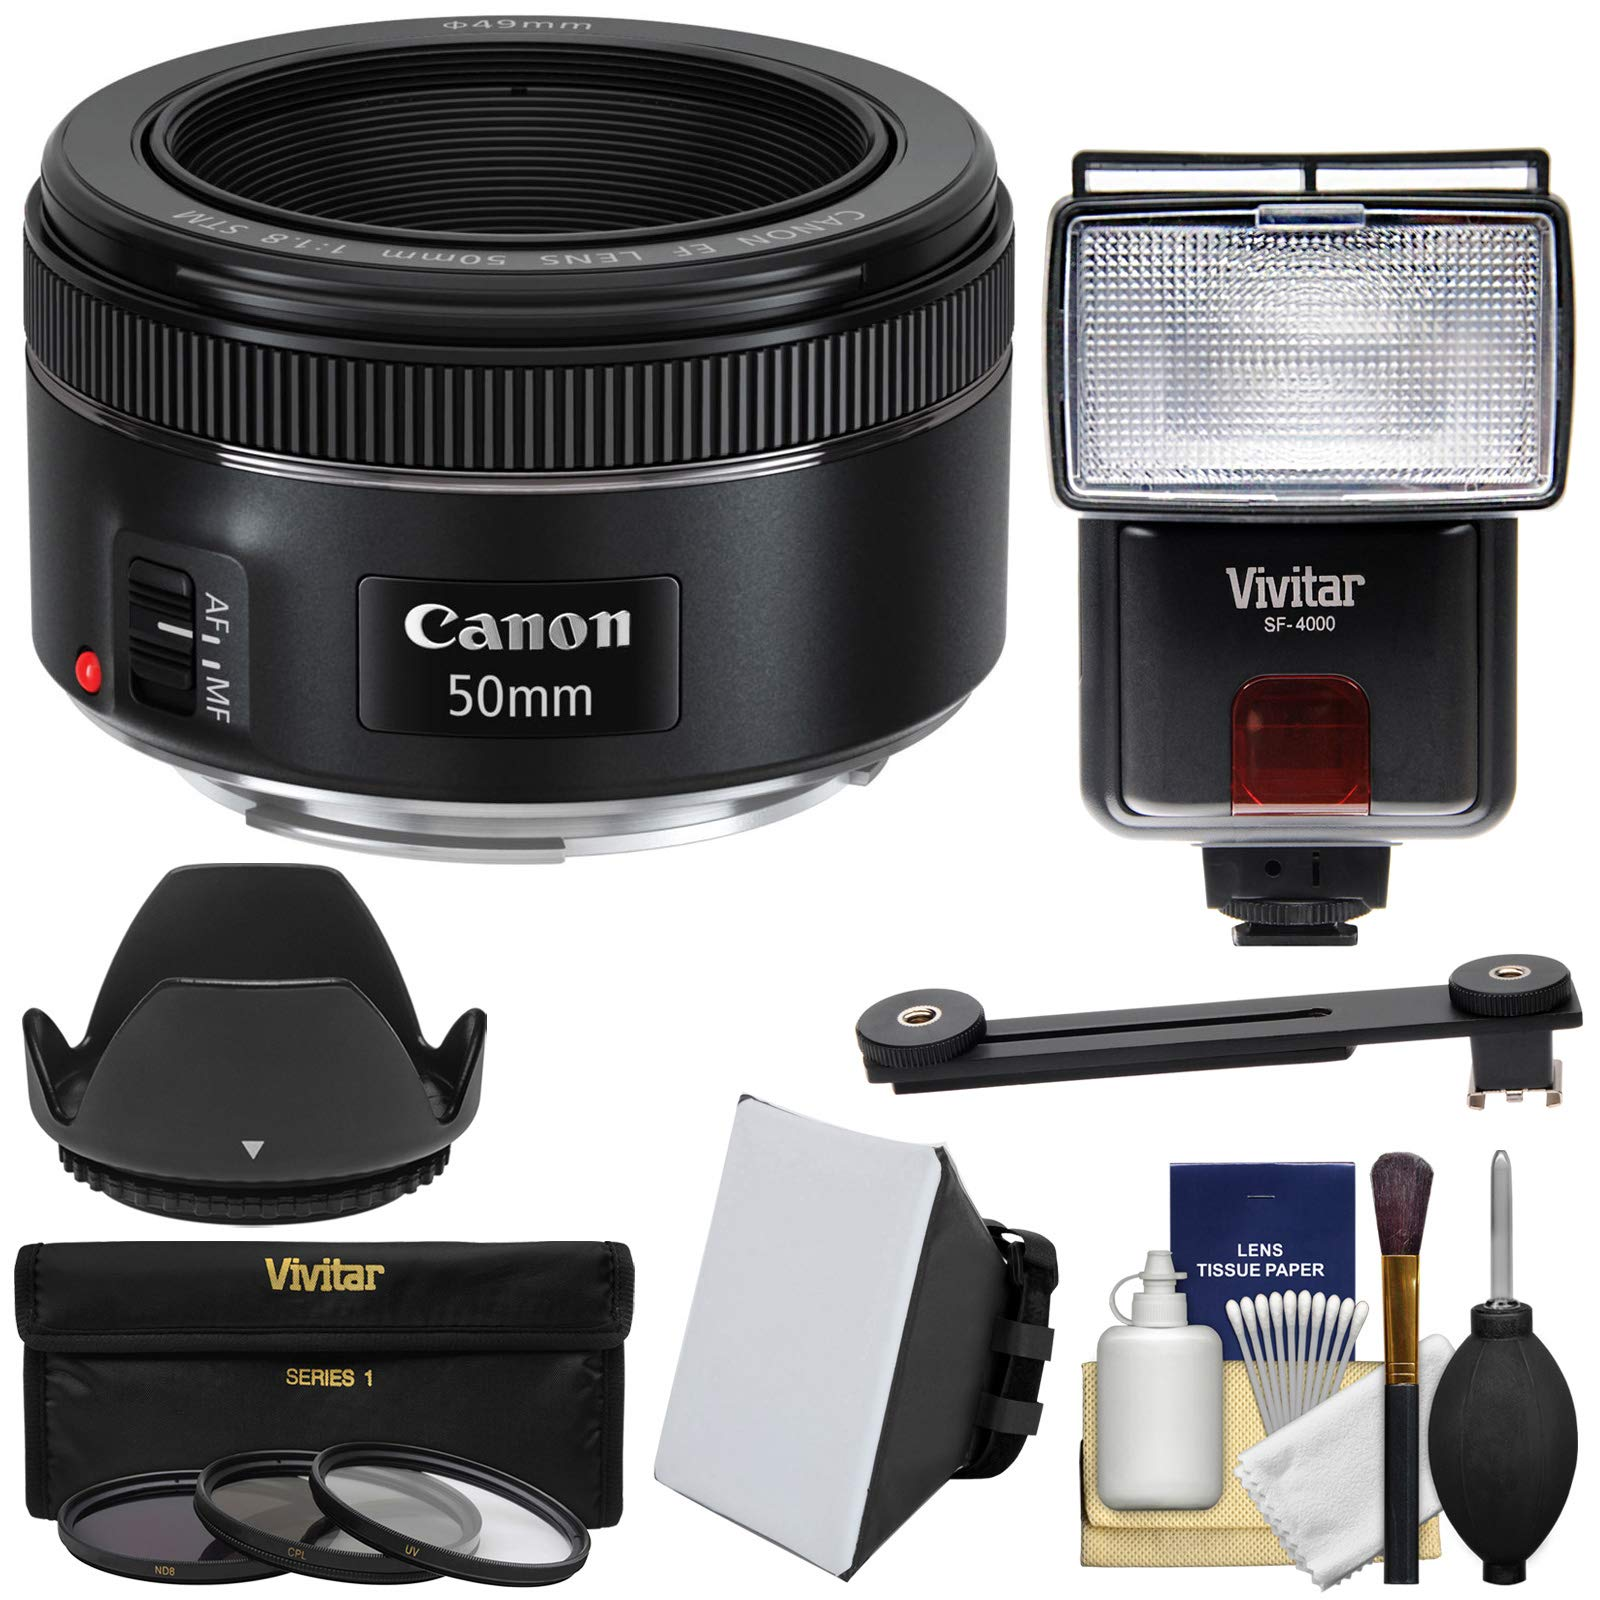 Canon EF 50mm f/1.8 STM Lens with 3 UV/CPL/ND8 Filters + Hood + Flash + Soft Box + Kit for EOS 6D, 70D, 7D, 5DS, 5D, Rebel T3, T3i, T5, T5i, T6i, T6s, SL1 Camera